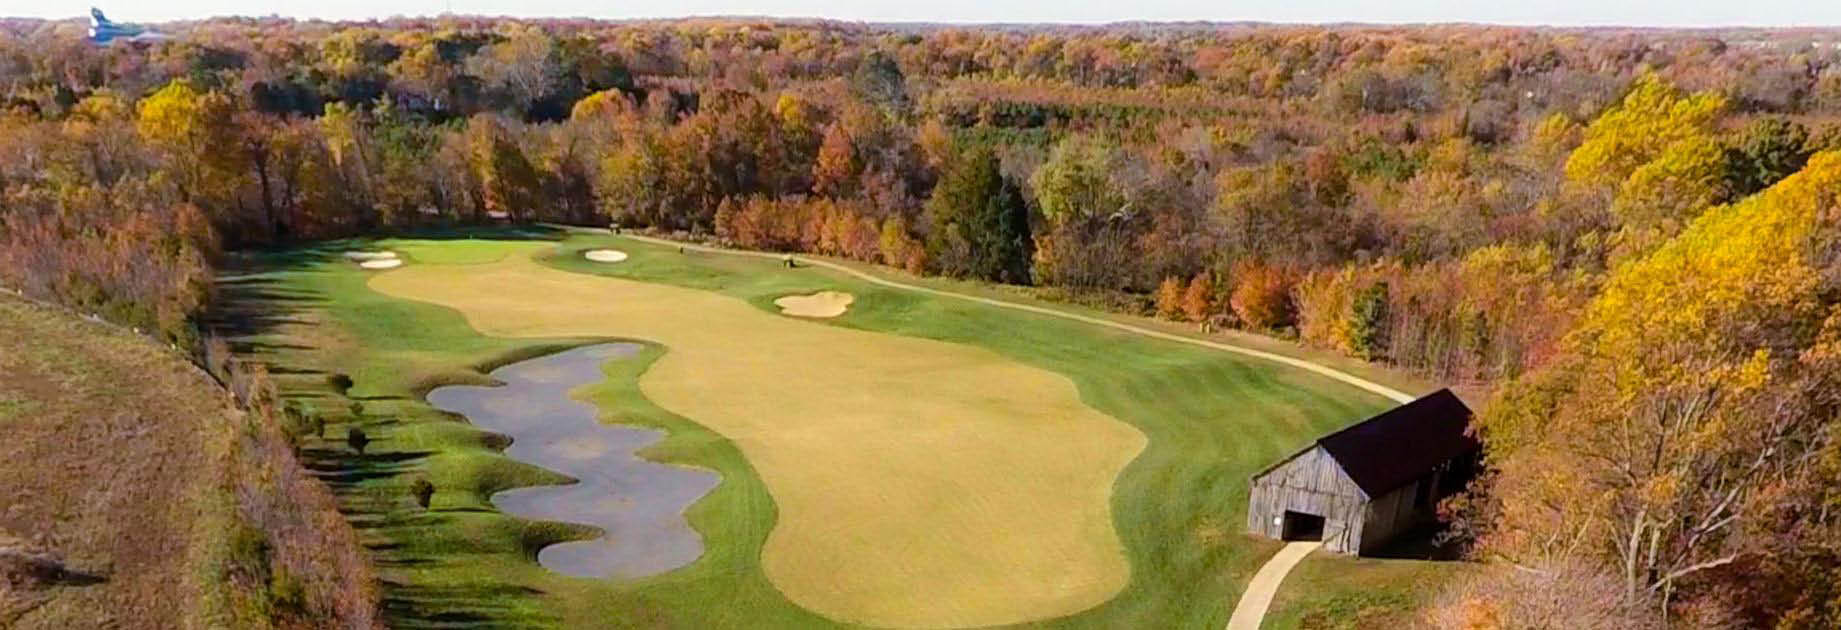 Oak Creek Golf Club is located in Upper Marlboro, Maryland